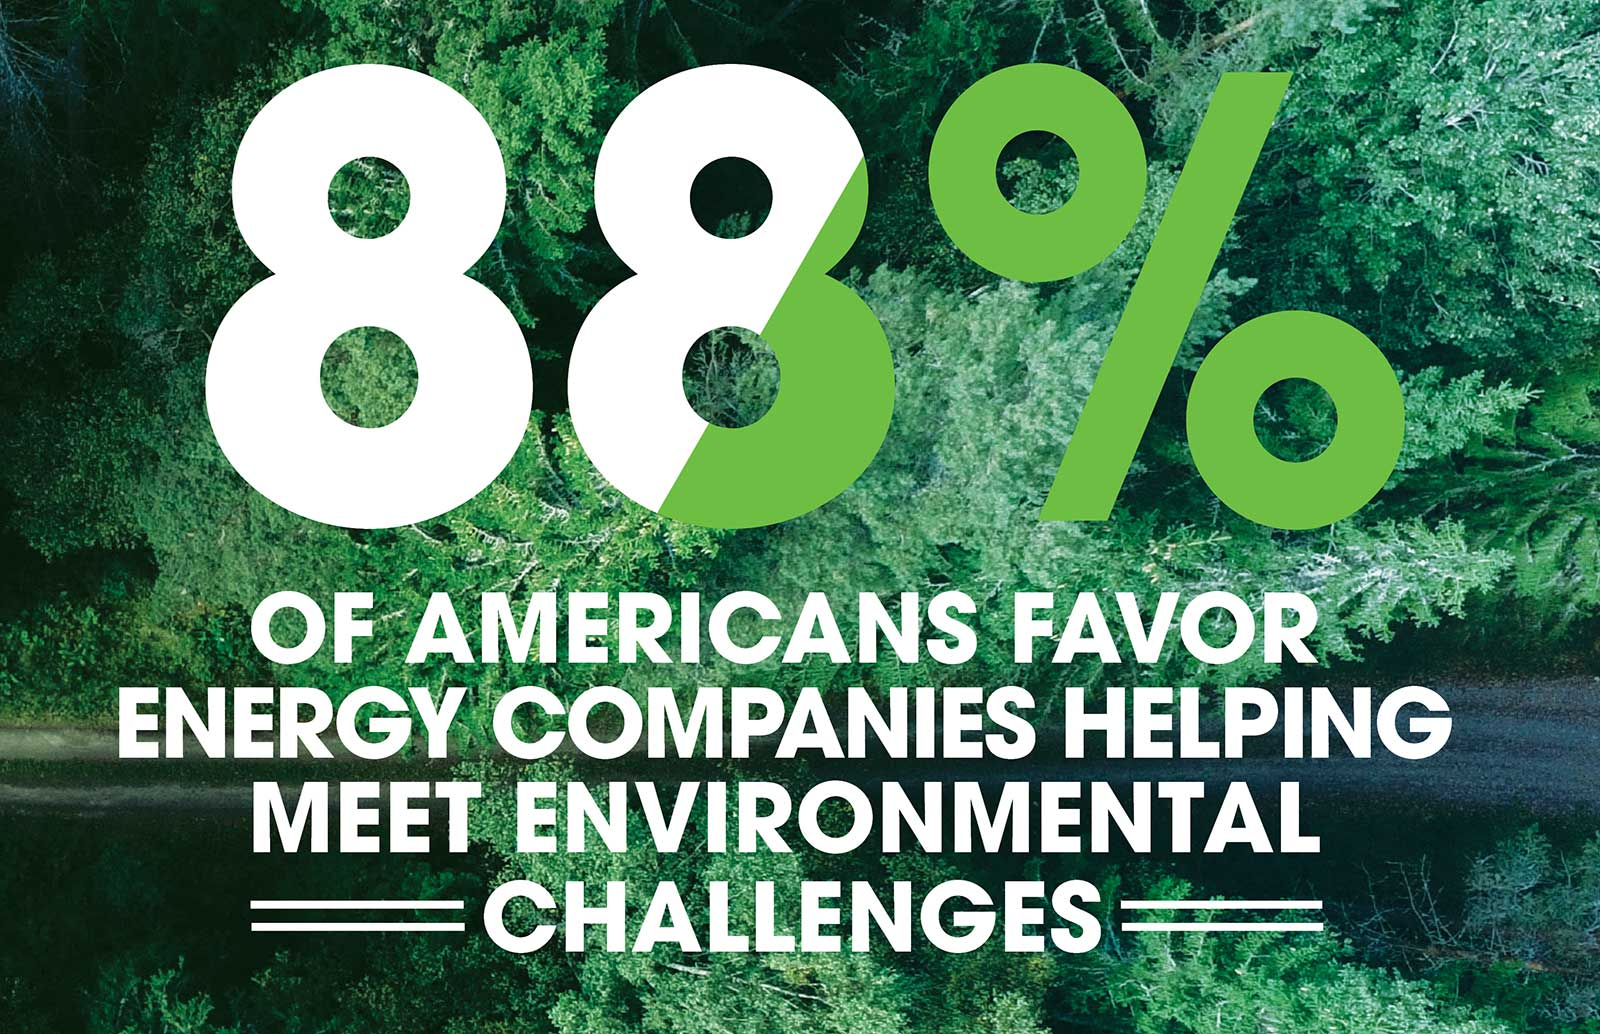 88% Of americans favor energy companies helping meet environmental  challenges